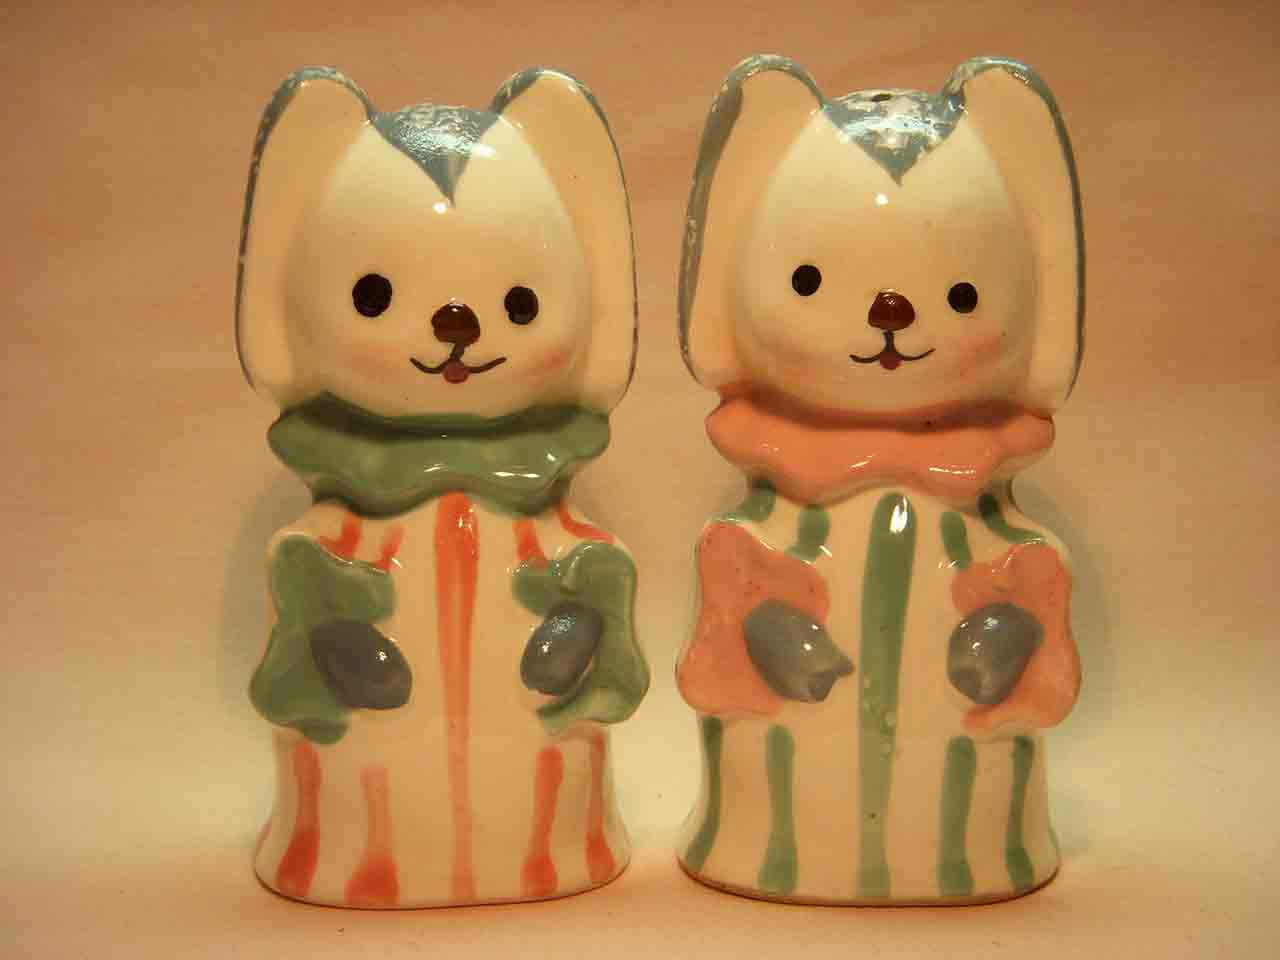 Animals in pajamas series salt and pepper shakers - dogs